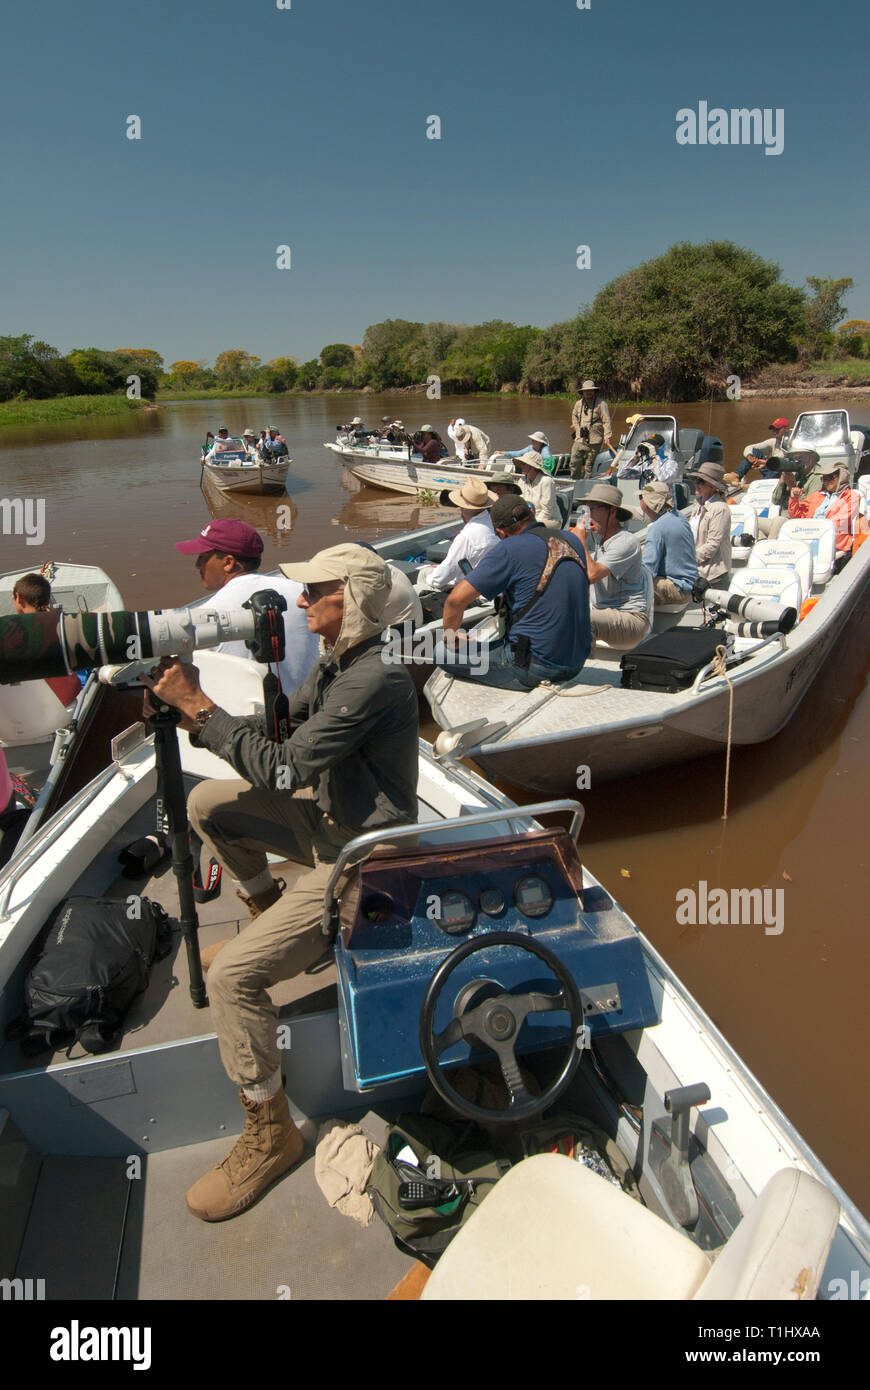 Photographers in boats waiting for a jaguar to wake up in The Pantanal in Brazil - Stock Image